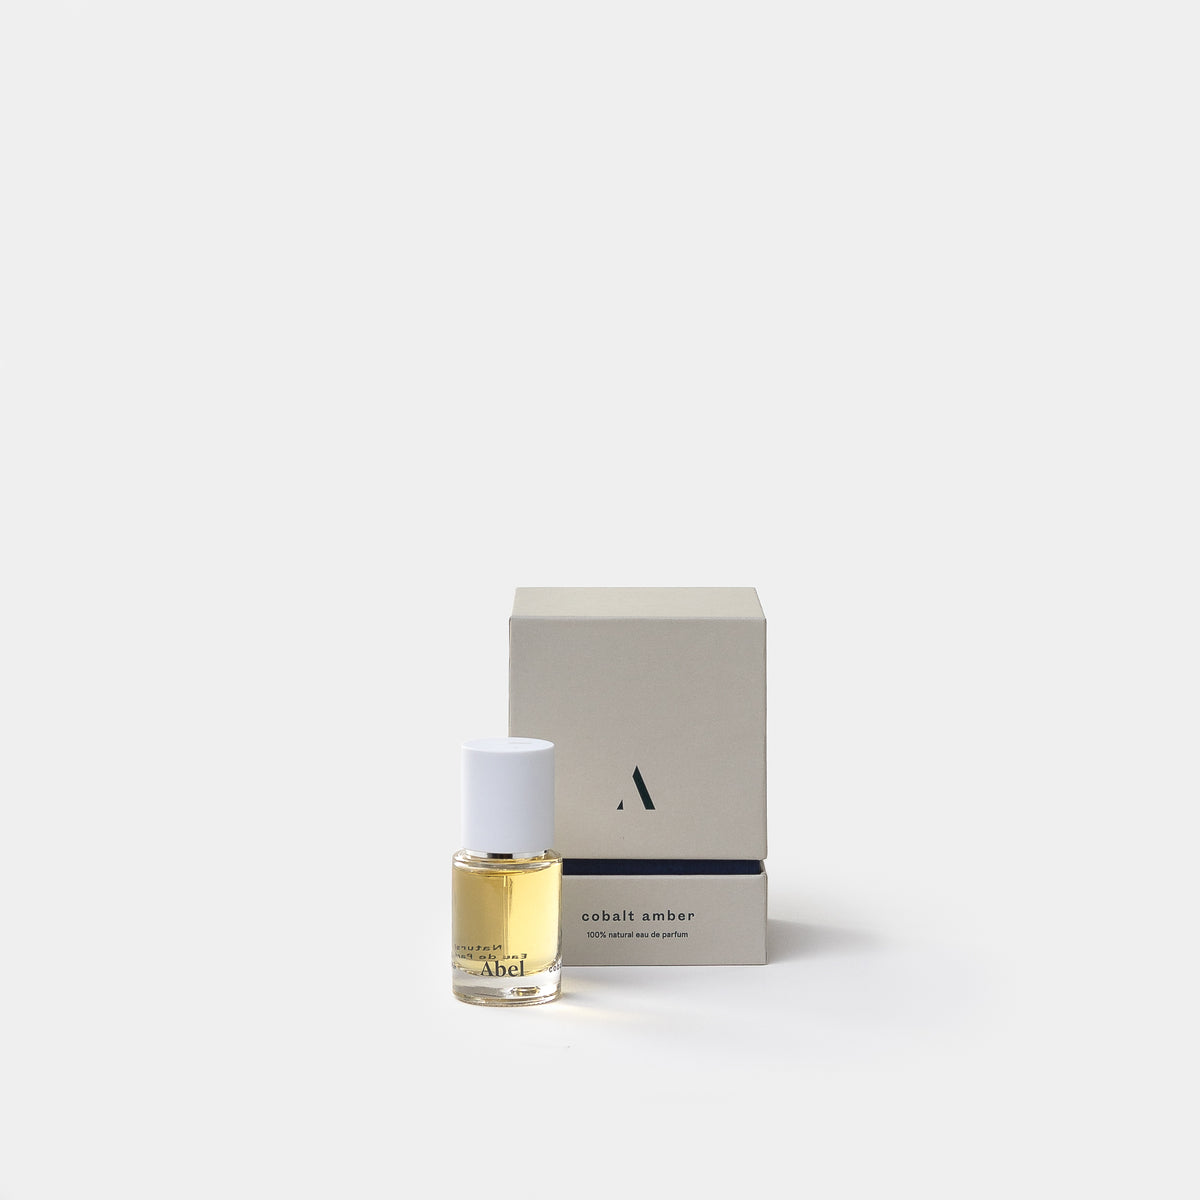 Load image into Gallery viewer, Cobalt Amber Parfum by Abel - Apothecary – Shoppe Amber Interiors